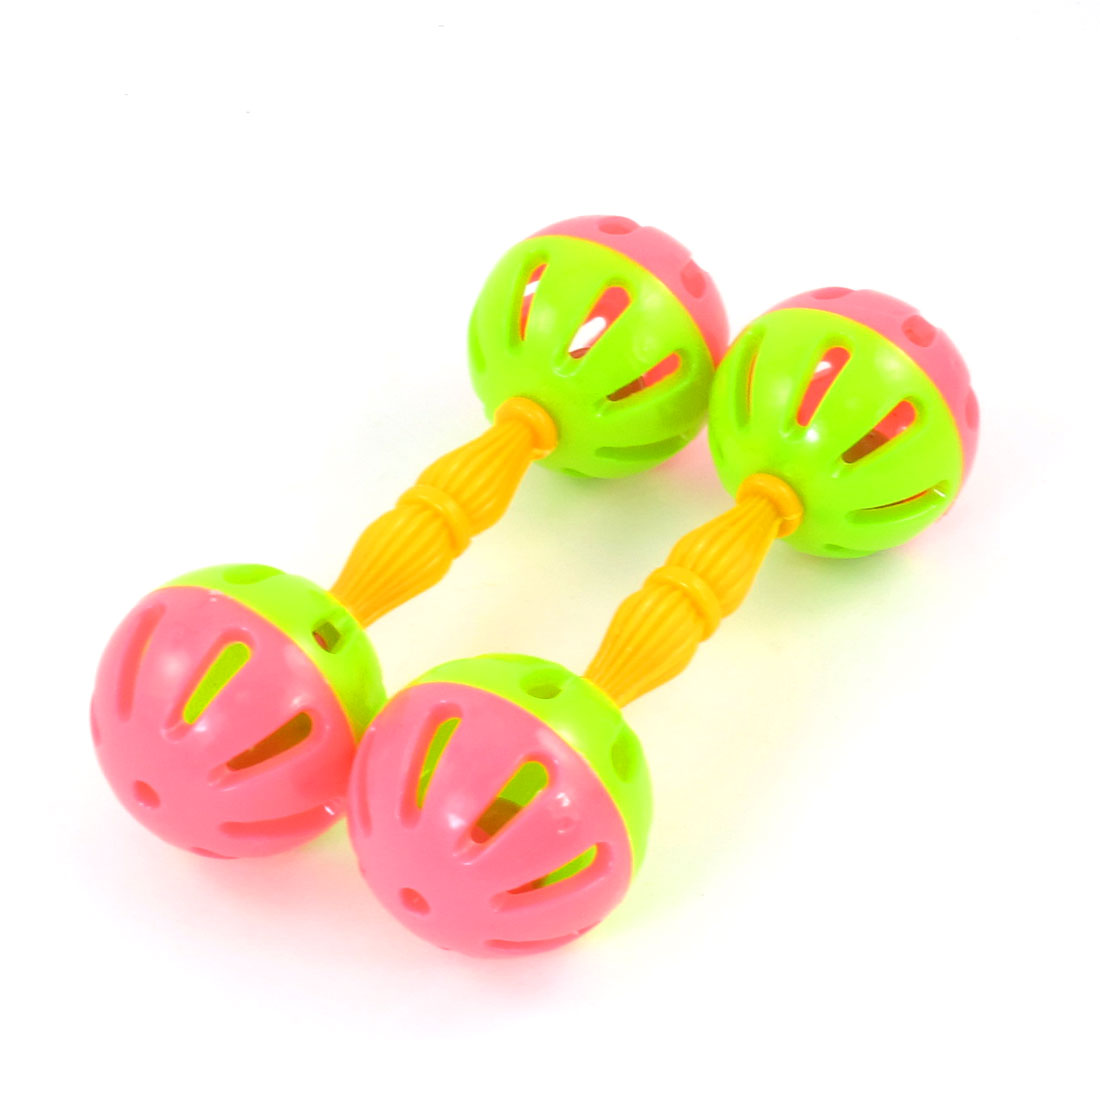 2 Pcs Plastic Stick Rattle Green Pink Hand Shaking Jingle Bell Toy for Child